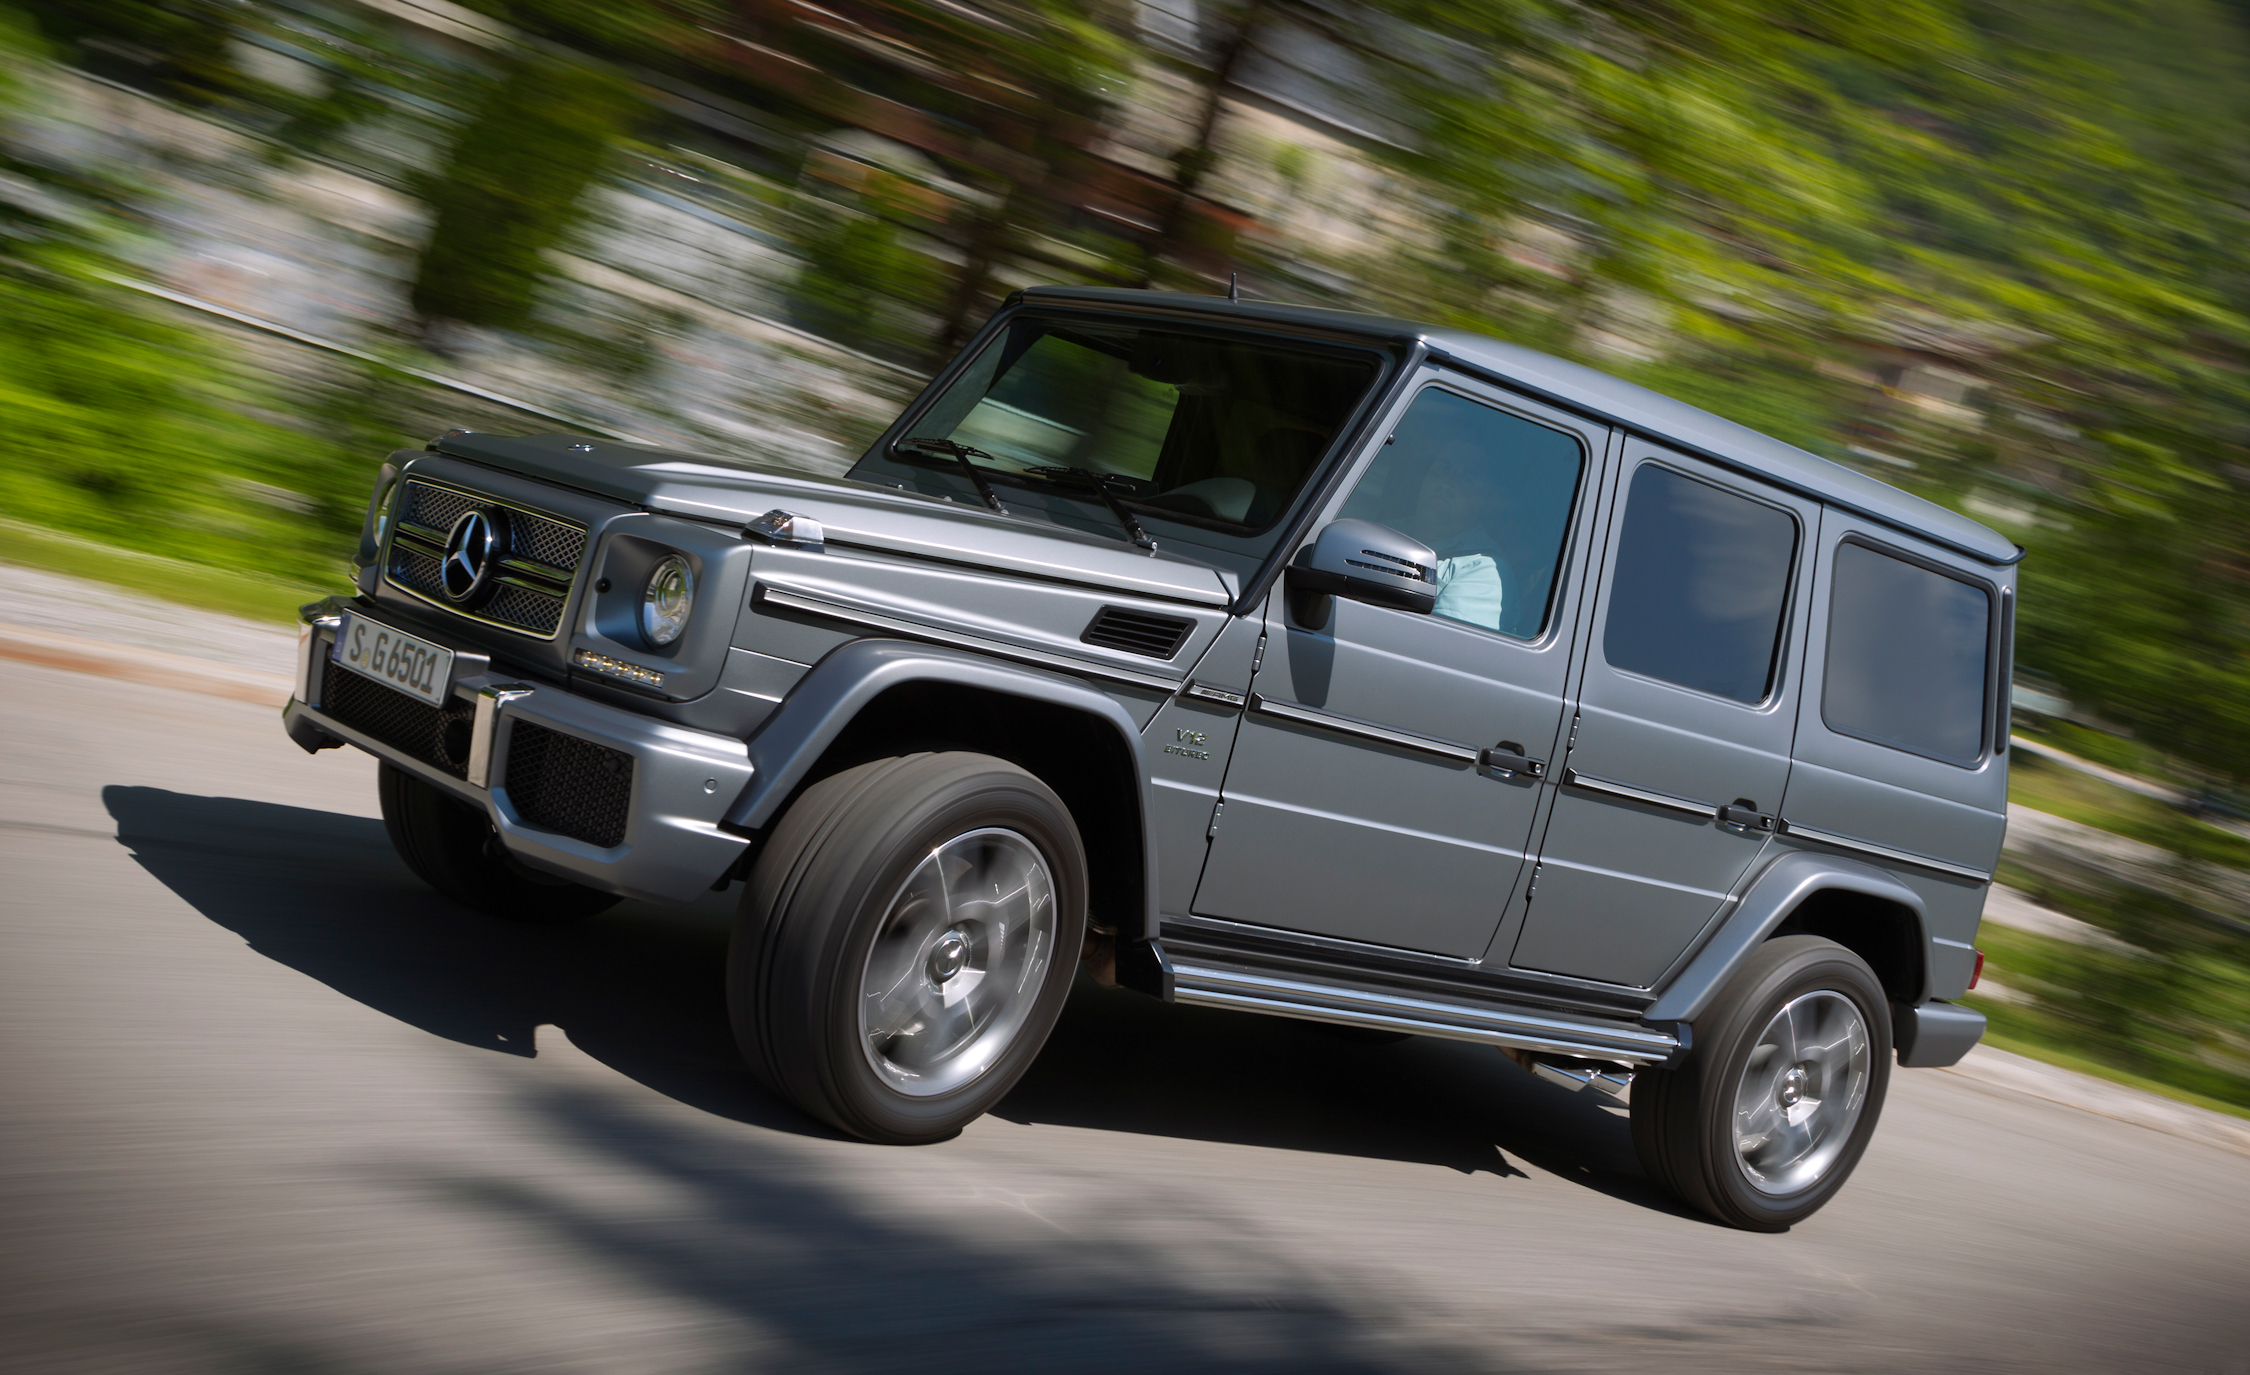 2016 Mercedes Benz G65 AMG (View 5 of 15)